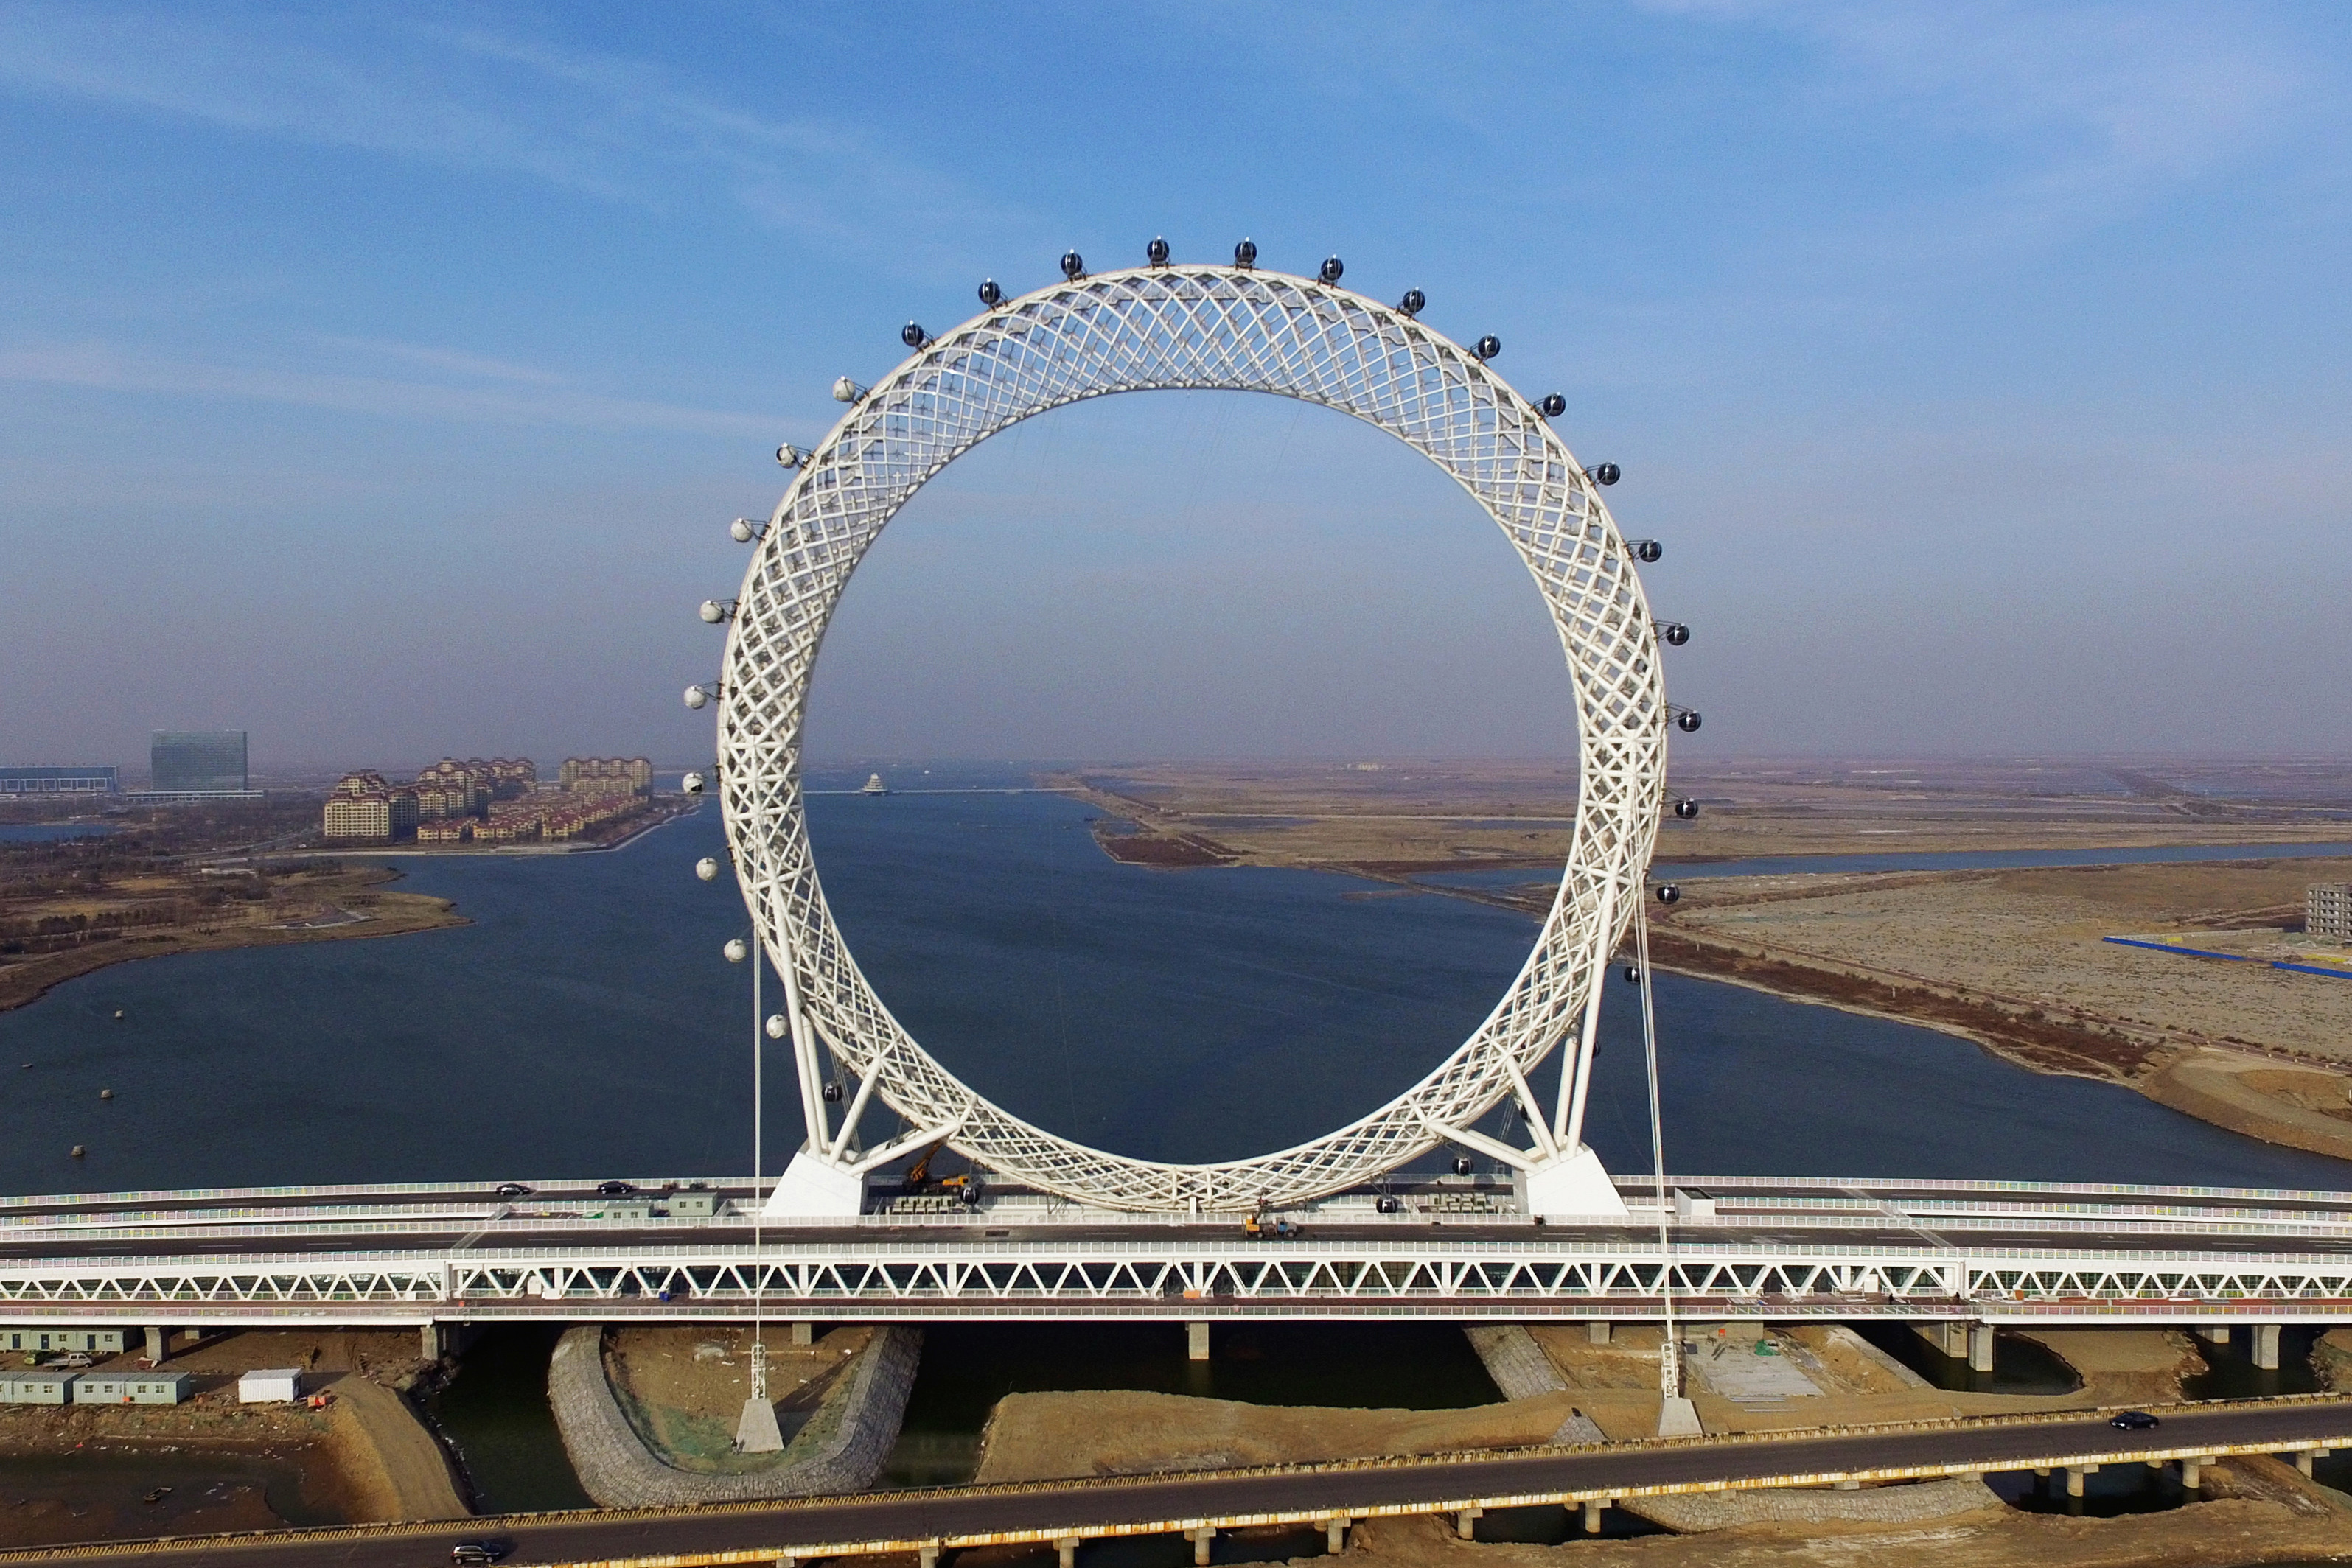 Slide 47 of 57: CAPTION: This photo taken on November 27, 2017 shows a 145-metre (476 feet) high spokeless ferris wheel in Weifang in China's eastern Shandong province. The ferris wheel is made up of 36 pods that can carry 10 passengers each. / AFP PHOTO / - / China OUT (Photo credit should read -/AFP/Getty Images)